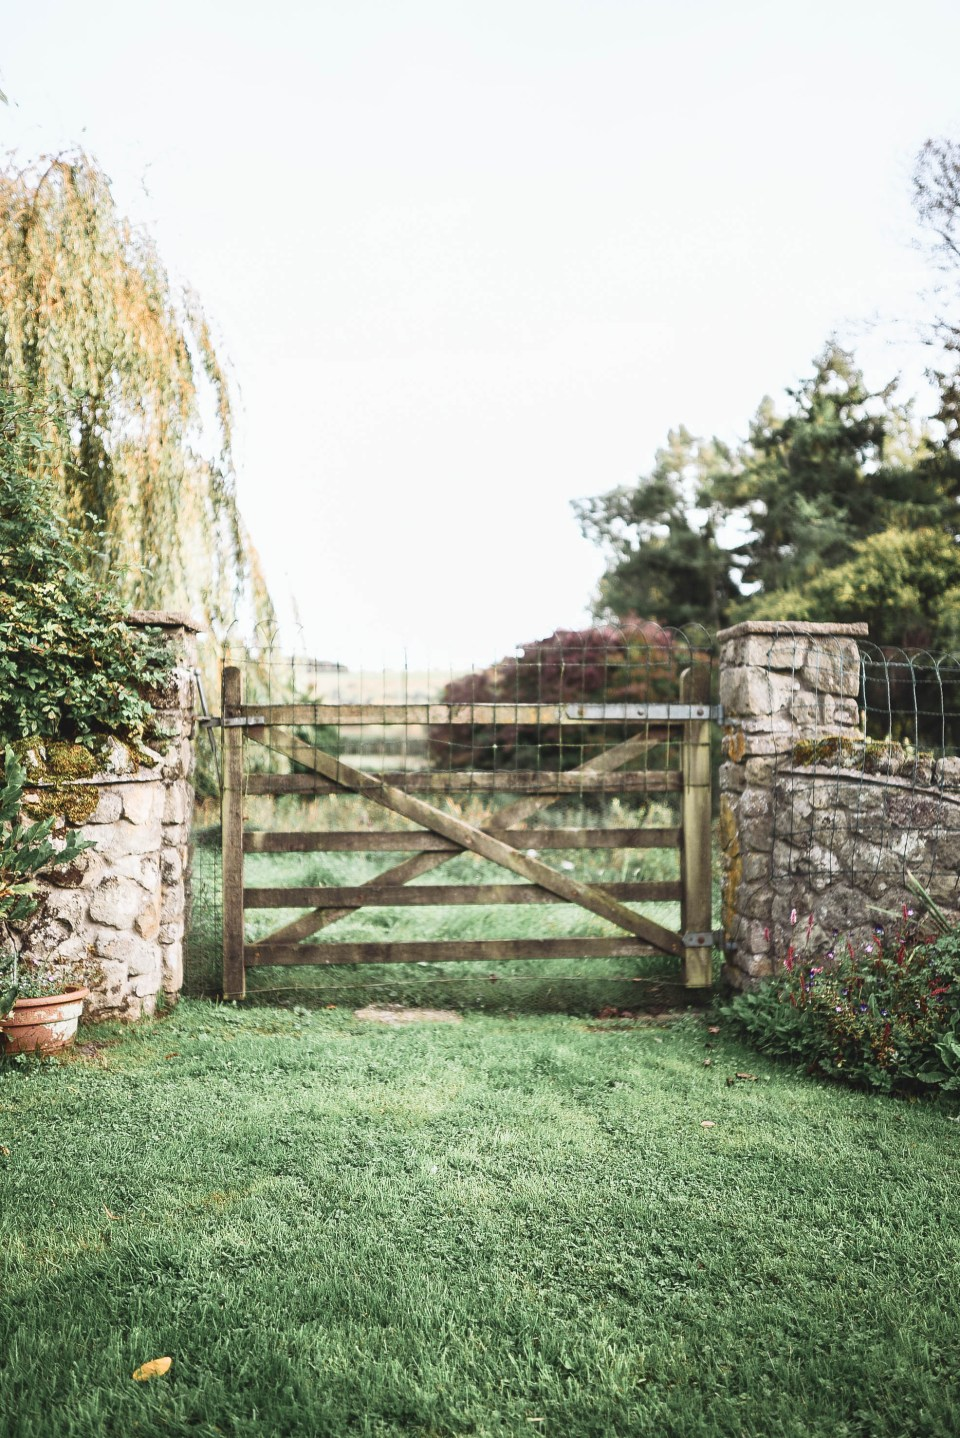 Farmhouse Gate in the English Countryside